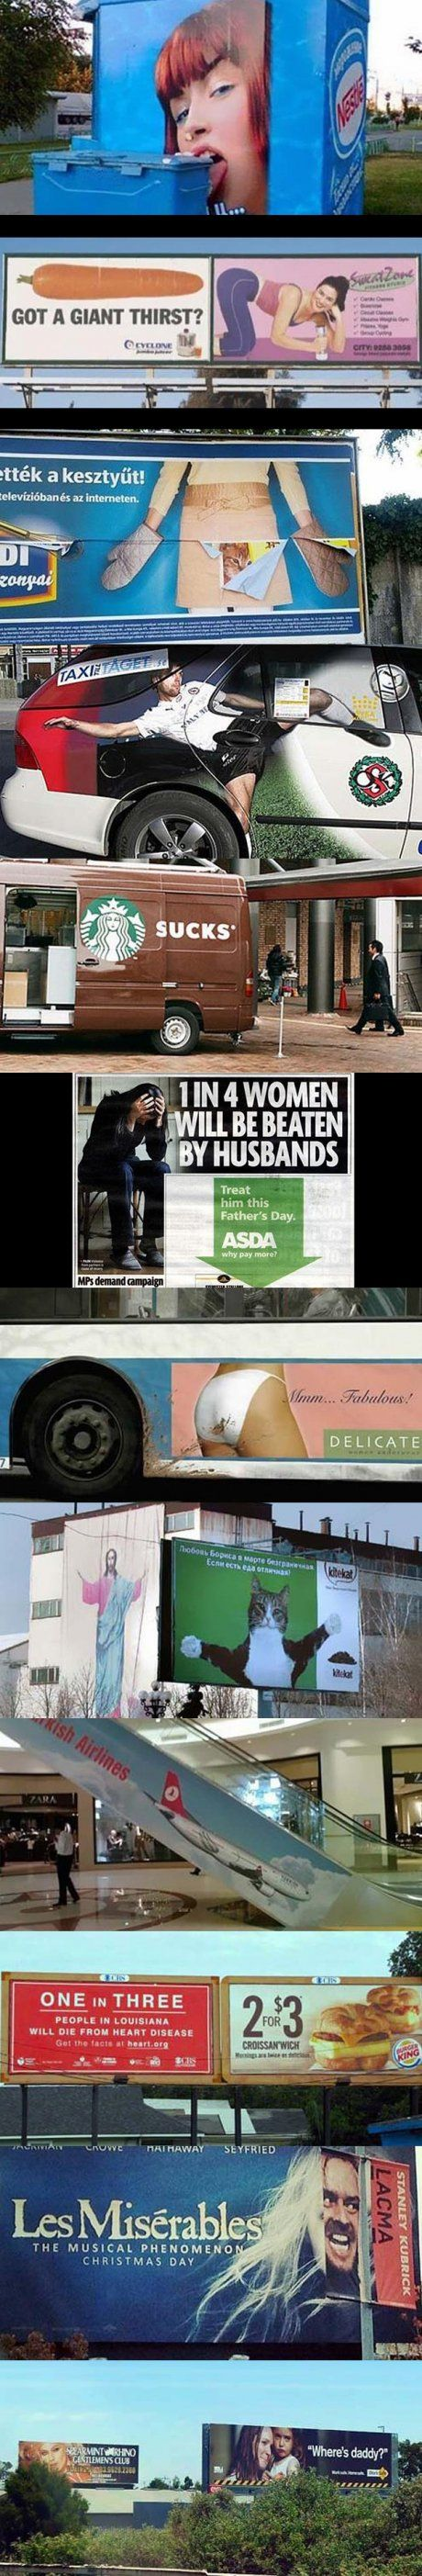 Awkward Ad Placements